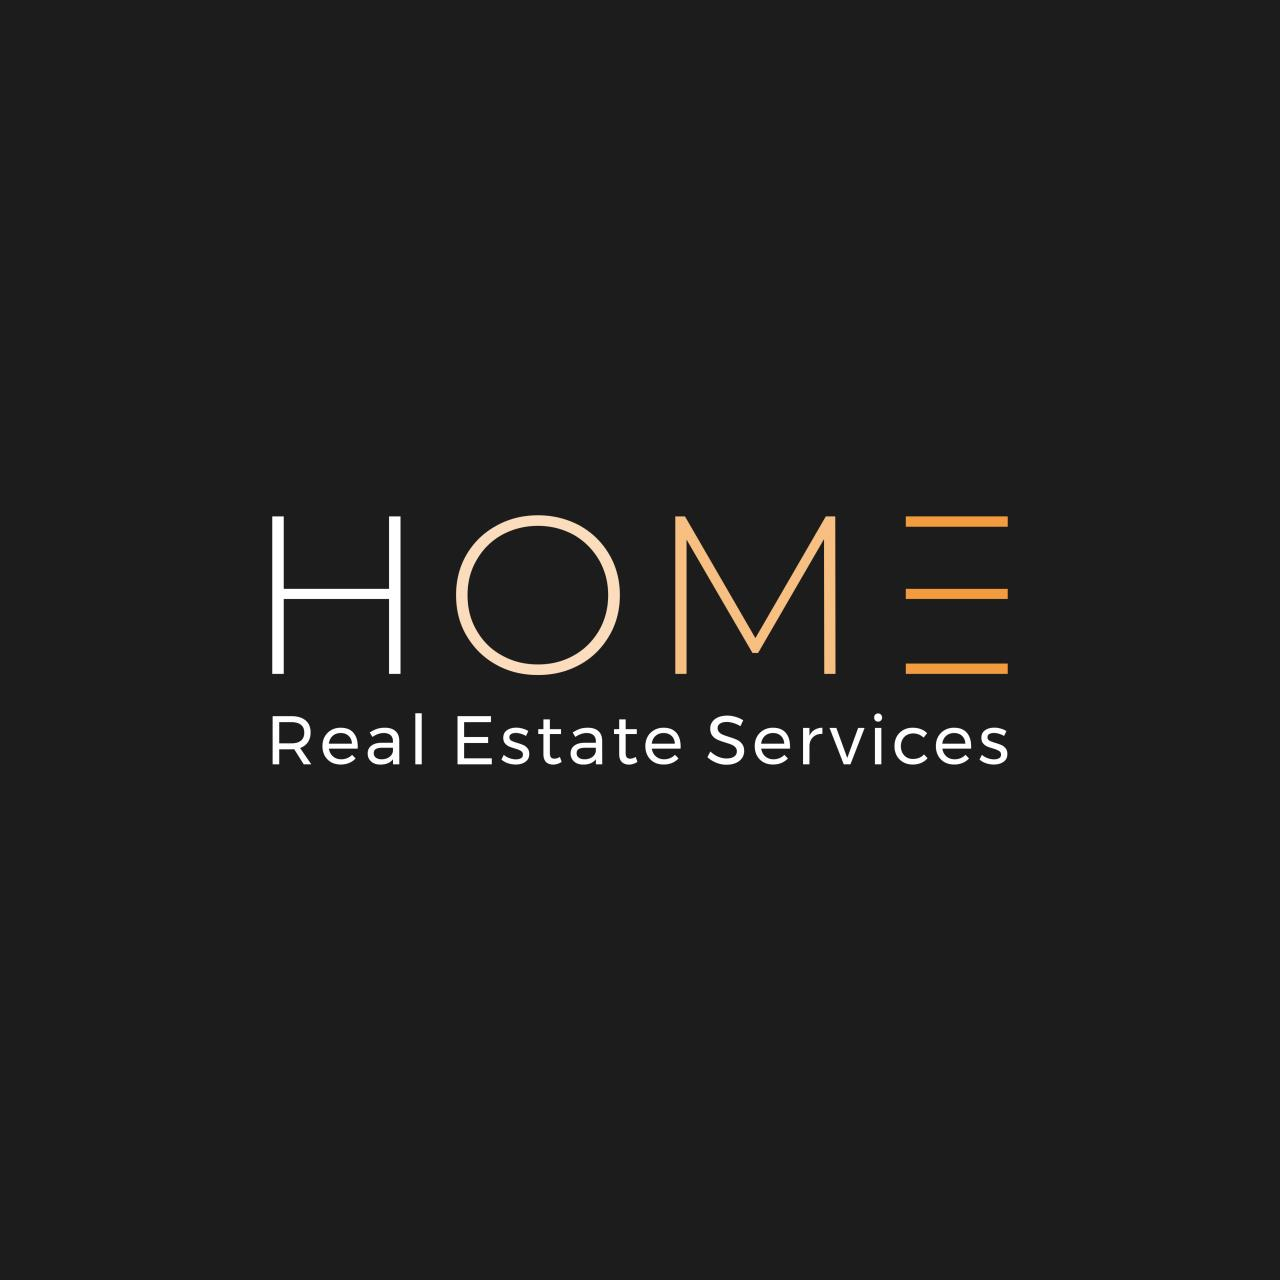 HOME - Real Estate Service logo